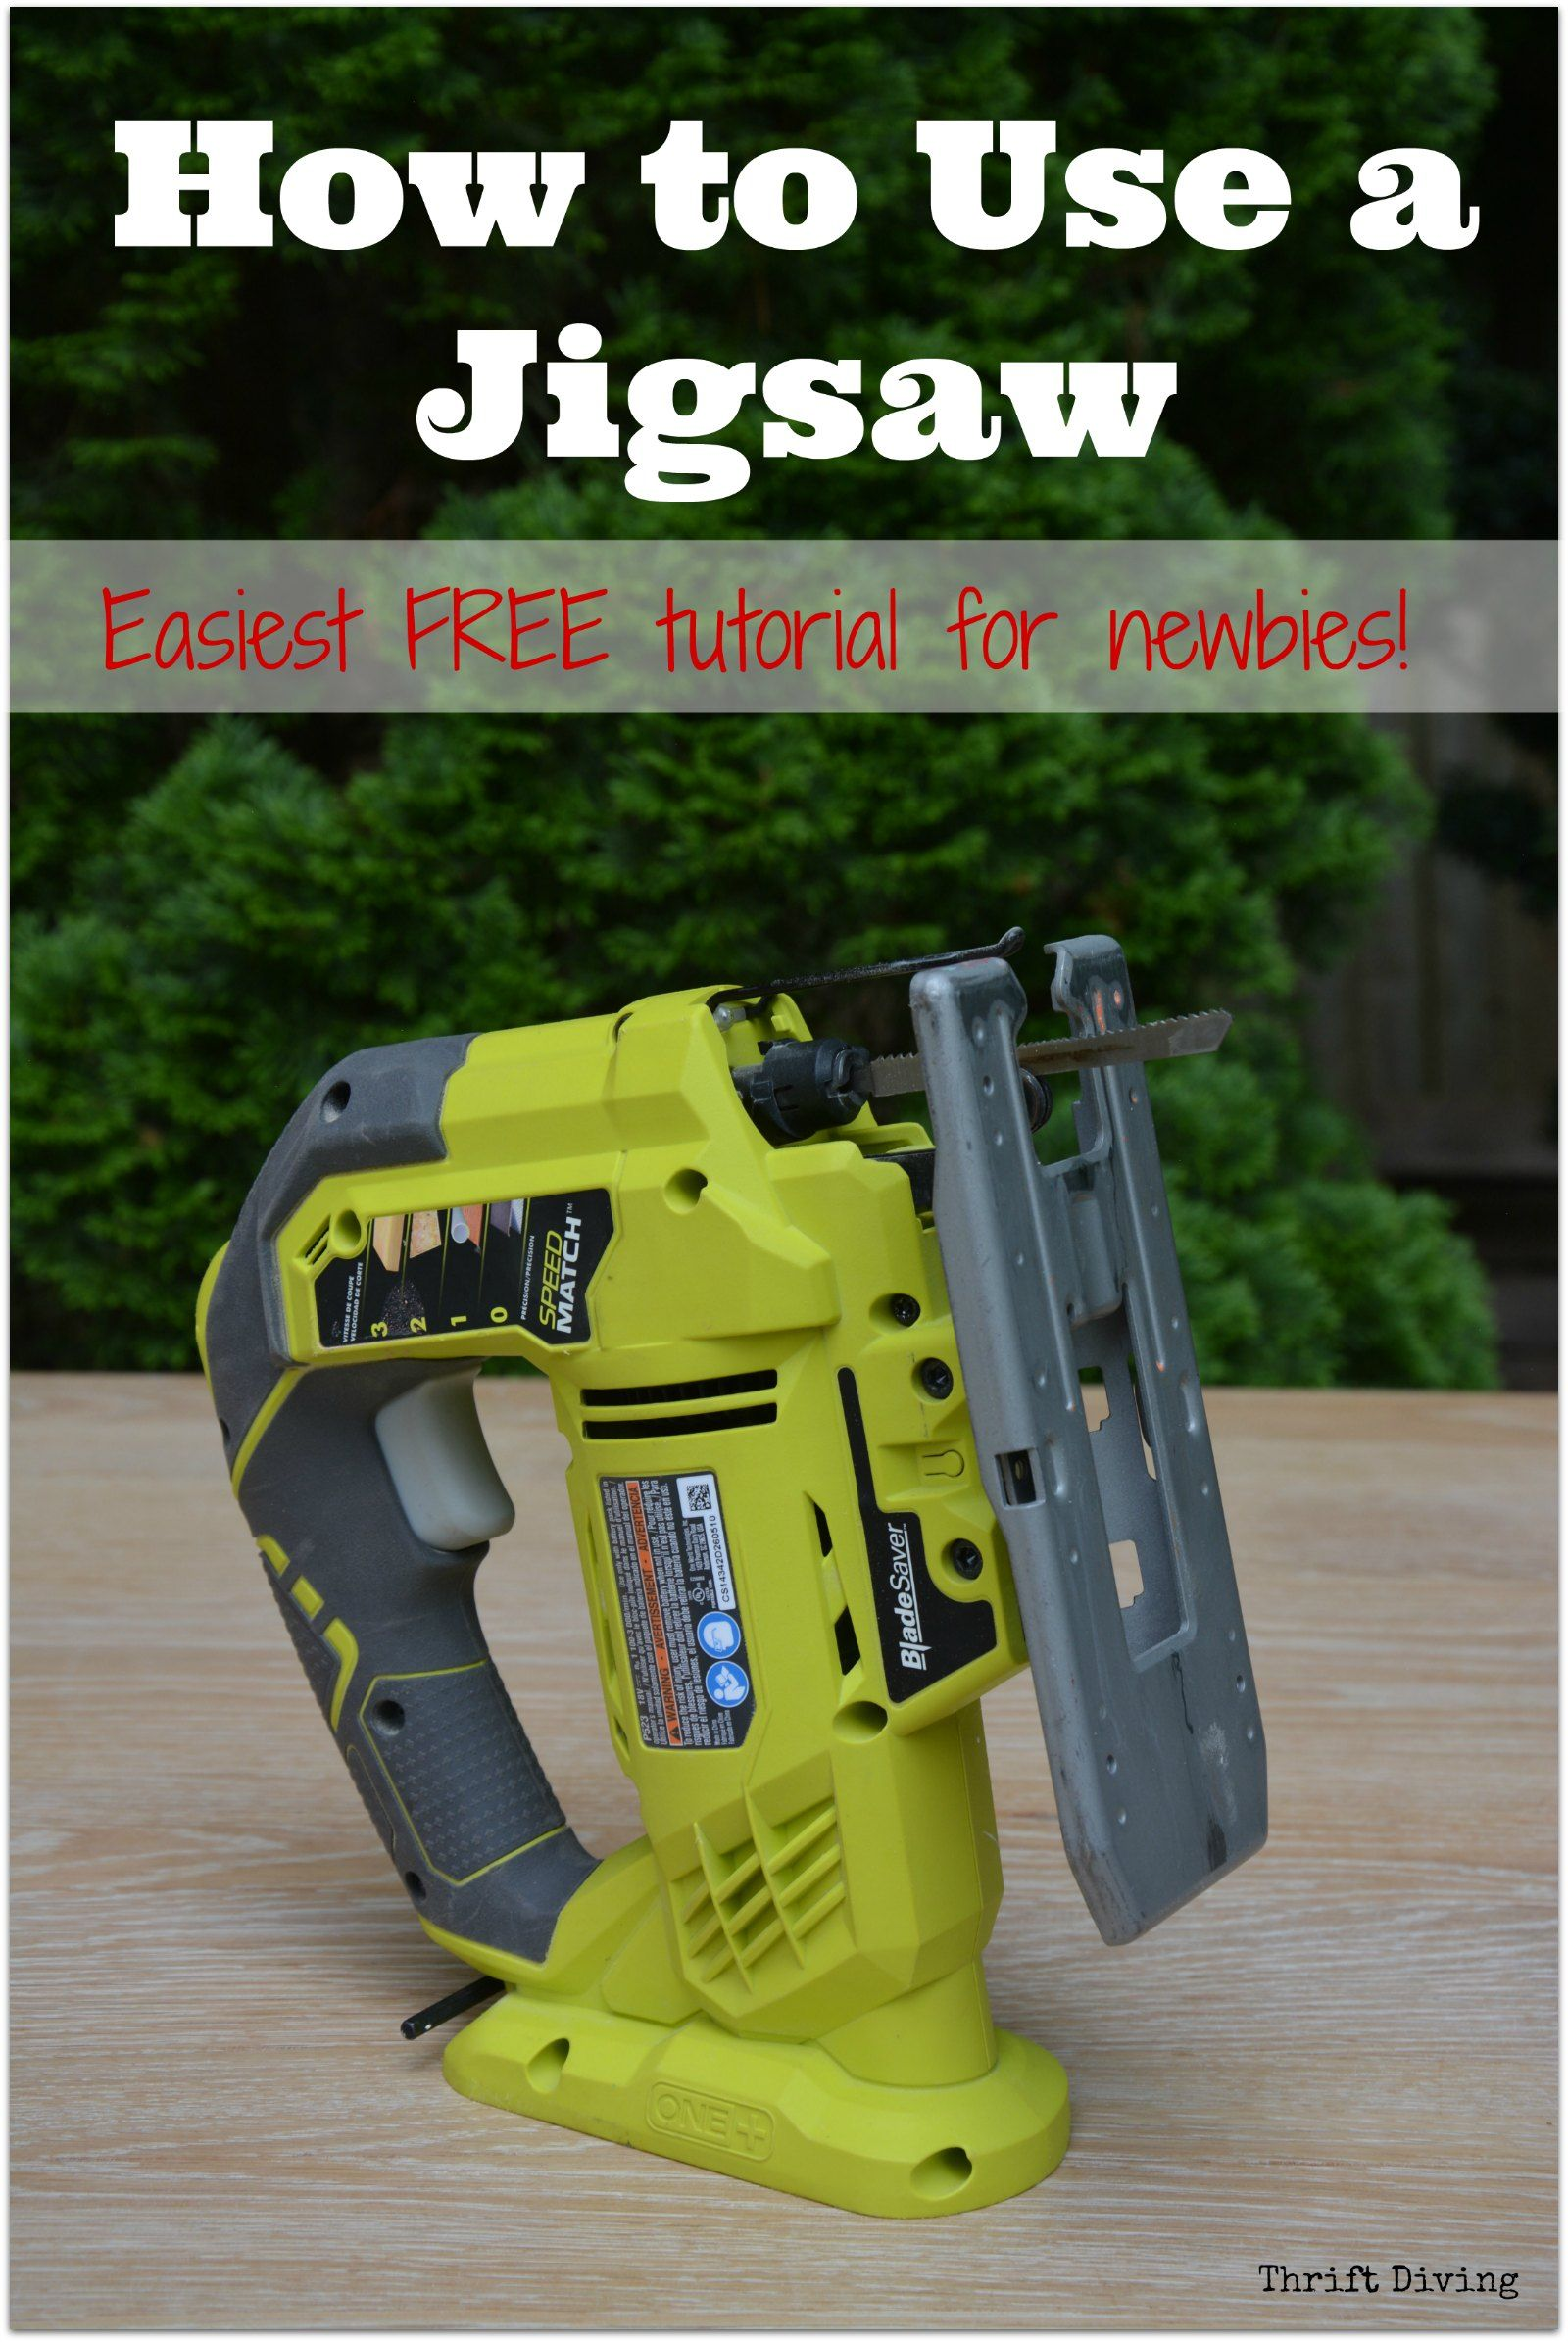 How To Use A Jigsaw The Easiest Tutorial Ever For Newbies Diy